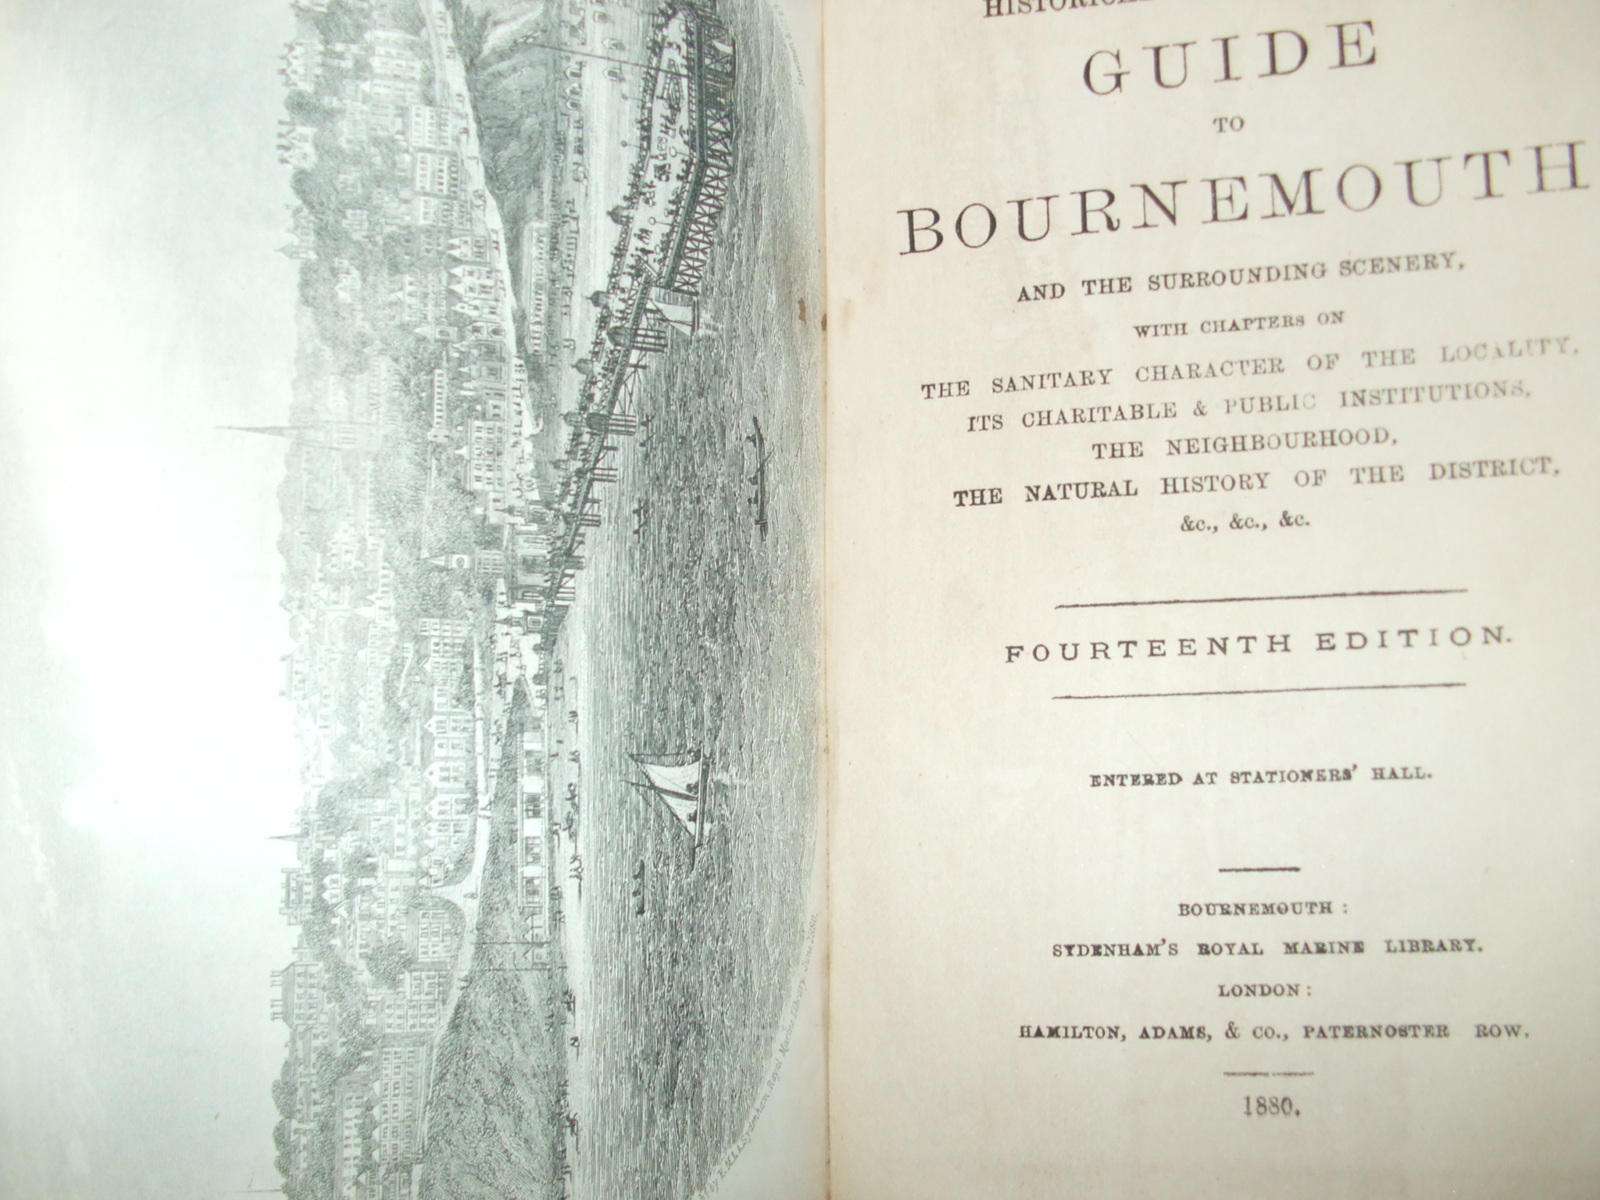 Image for The Illustrated Historical and Descriptive Guide to Bournemouth and Surrounding Scenery